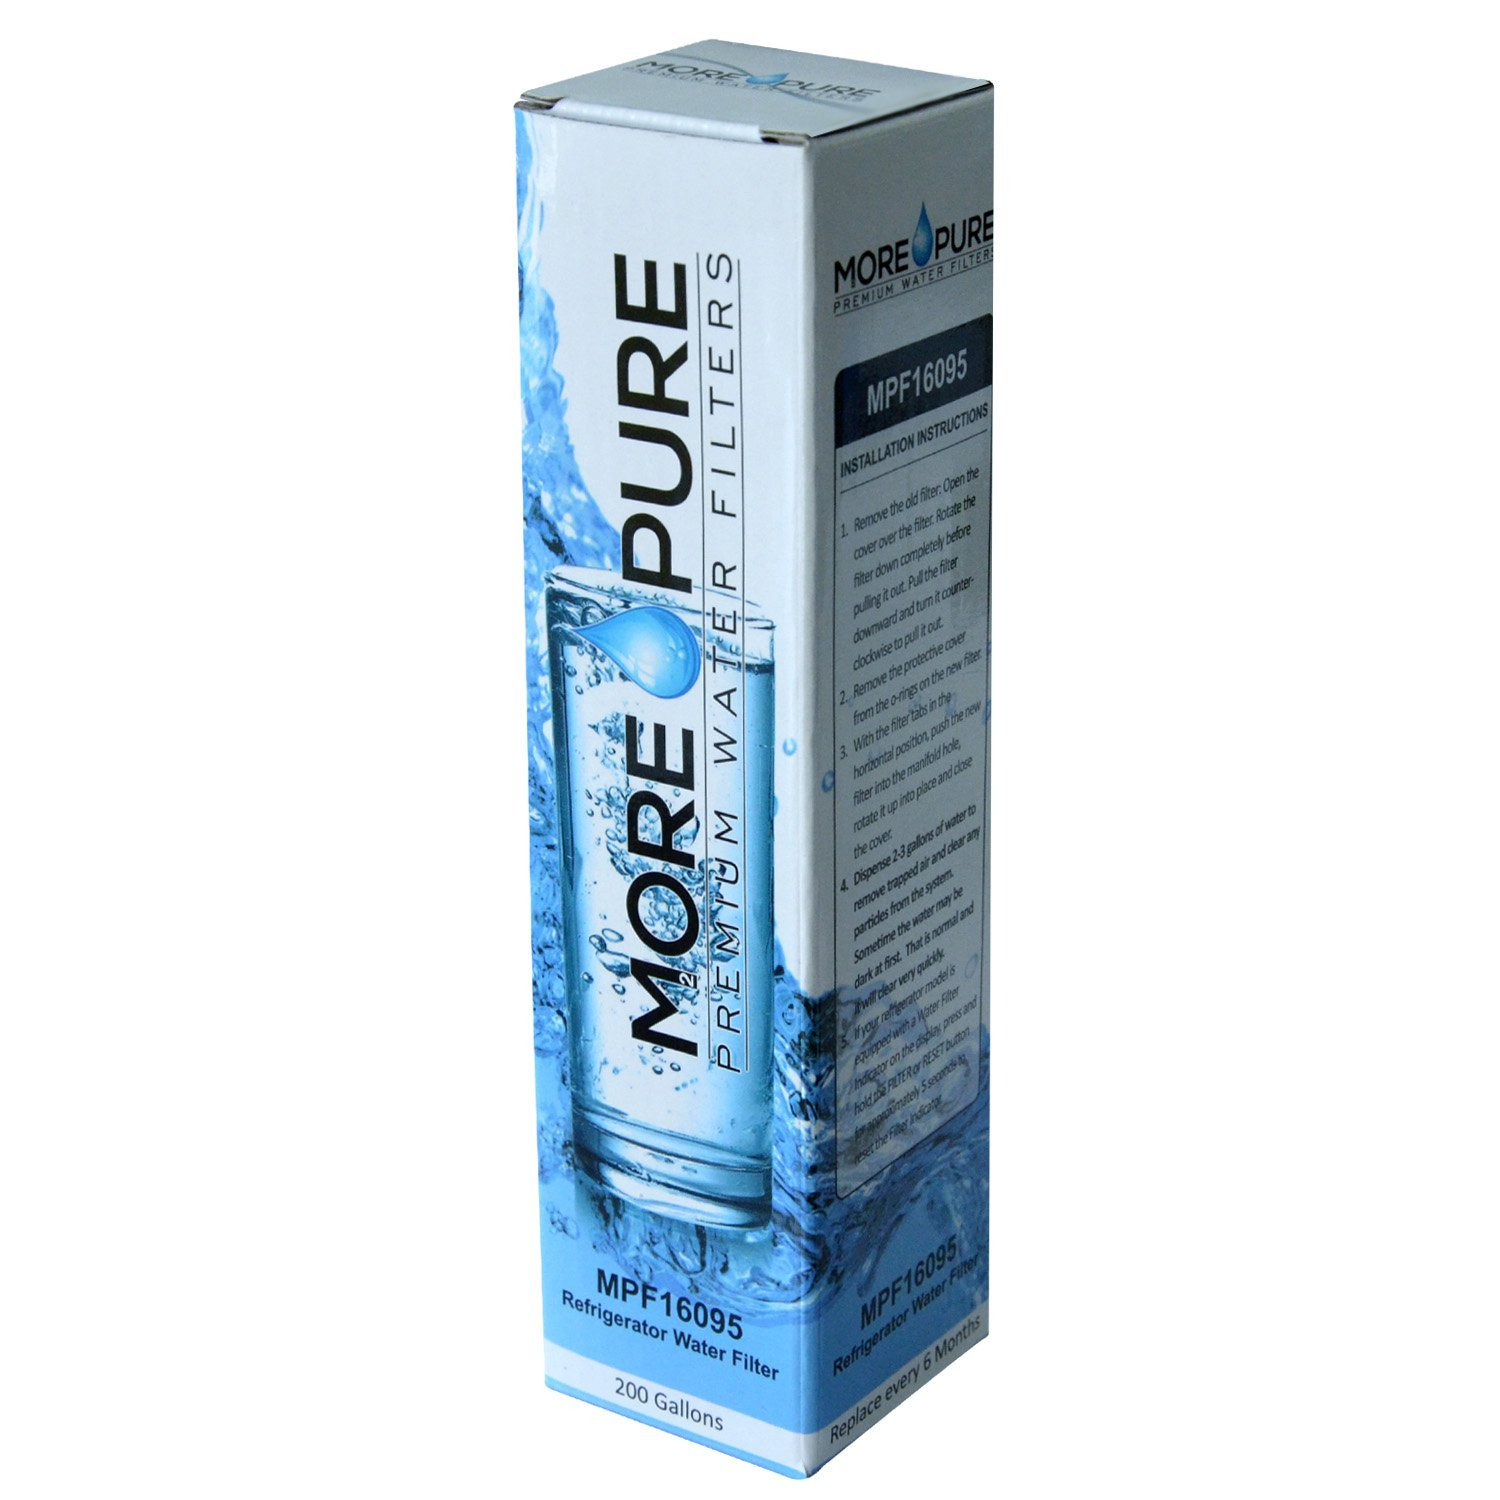 MORE Pure MPF16095 Refrigerator Water Filter Compatible with LG LT800P and Kenmore 46-9460 by MORE Pure Filters (Image #8)